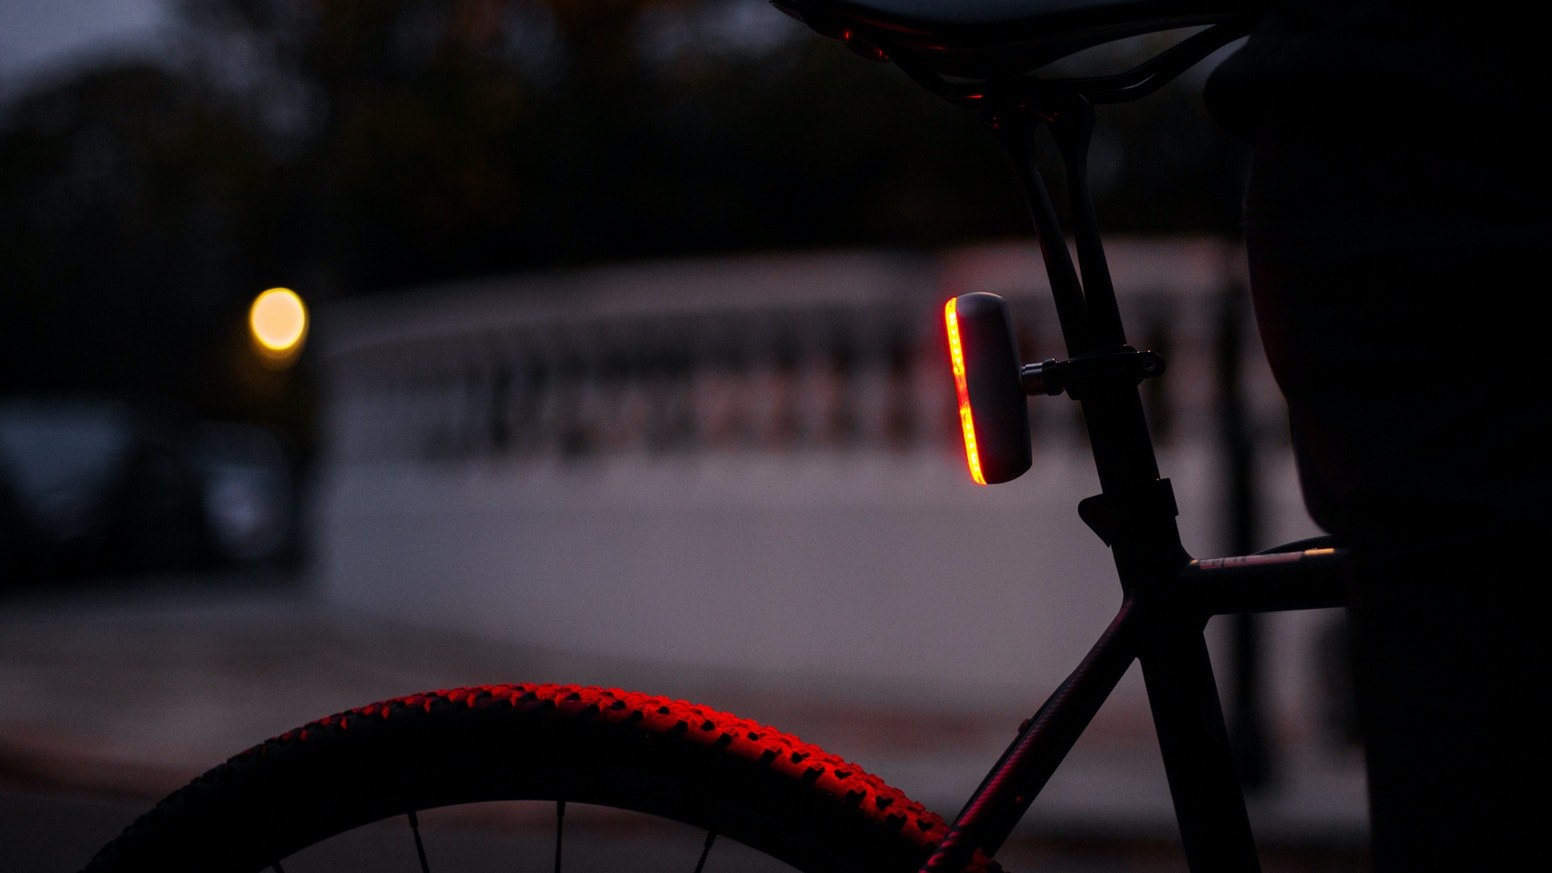 We set out to create the ultimate back light - focusing on performance, safety and simplicity.